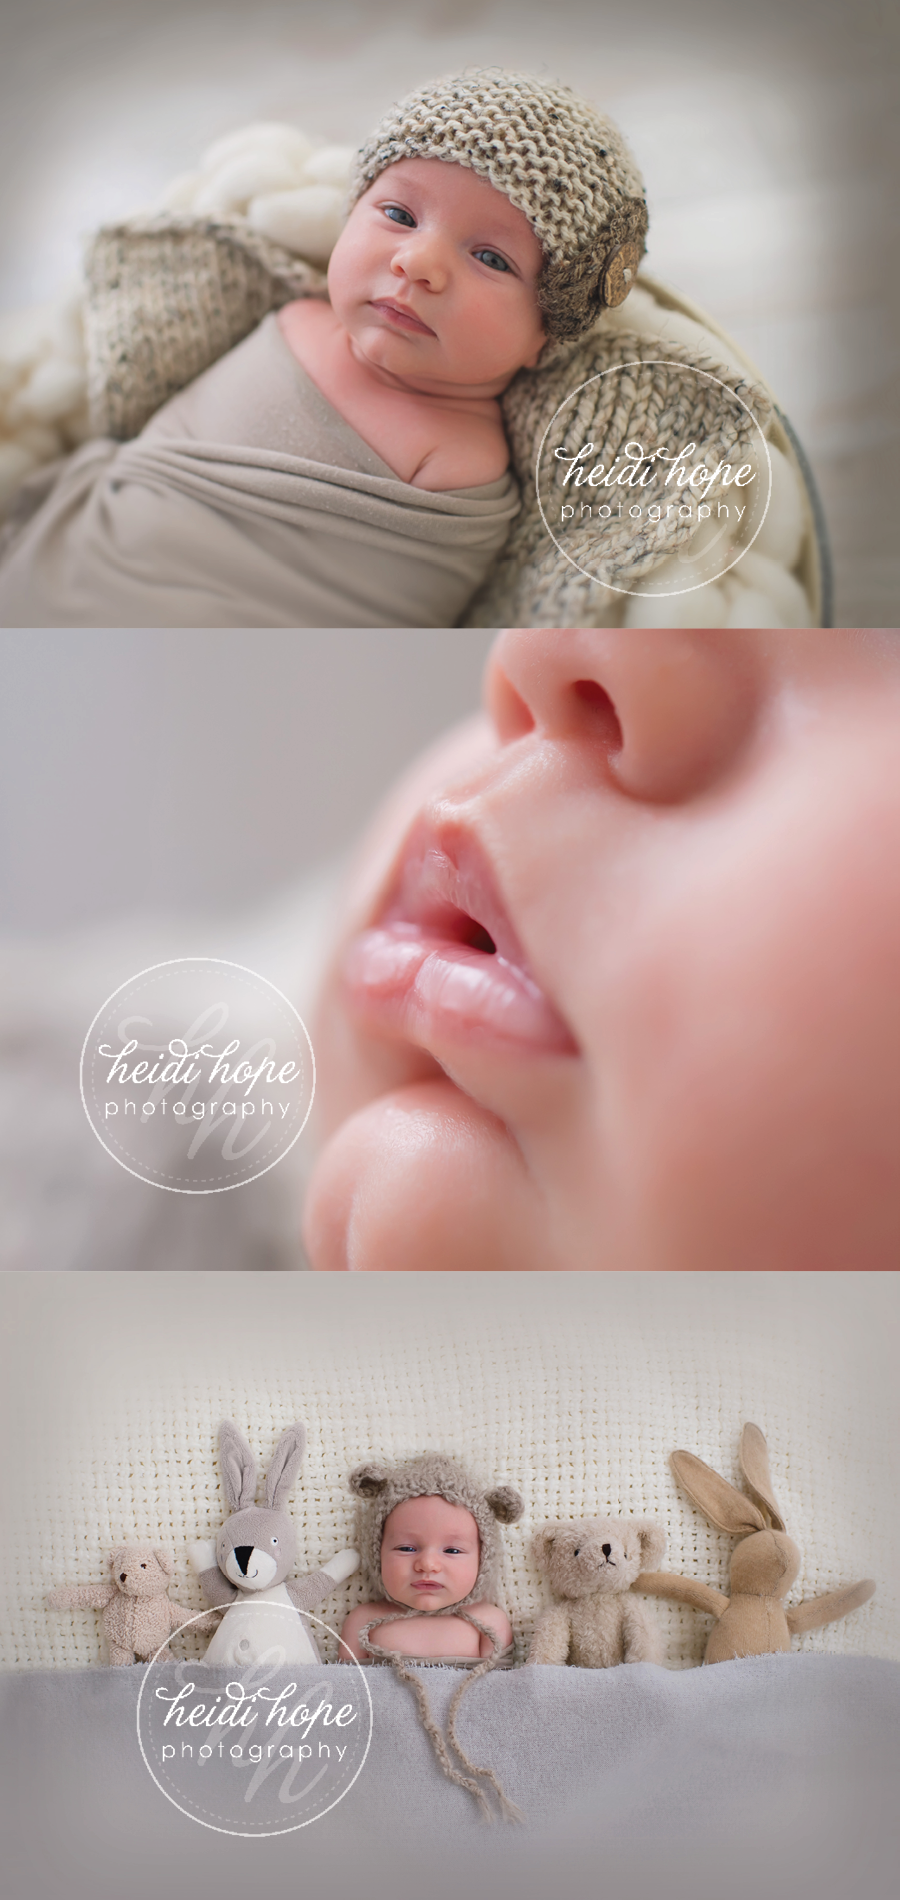 6 Week Old Newborn Photography